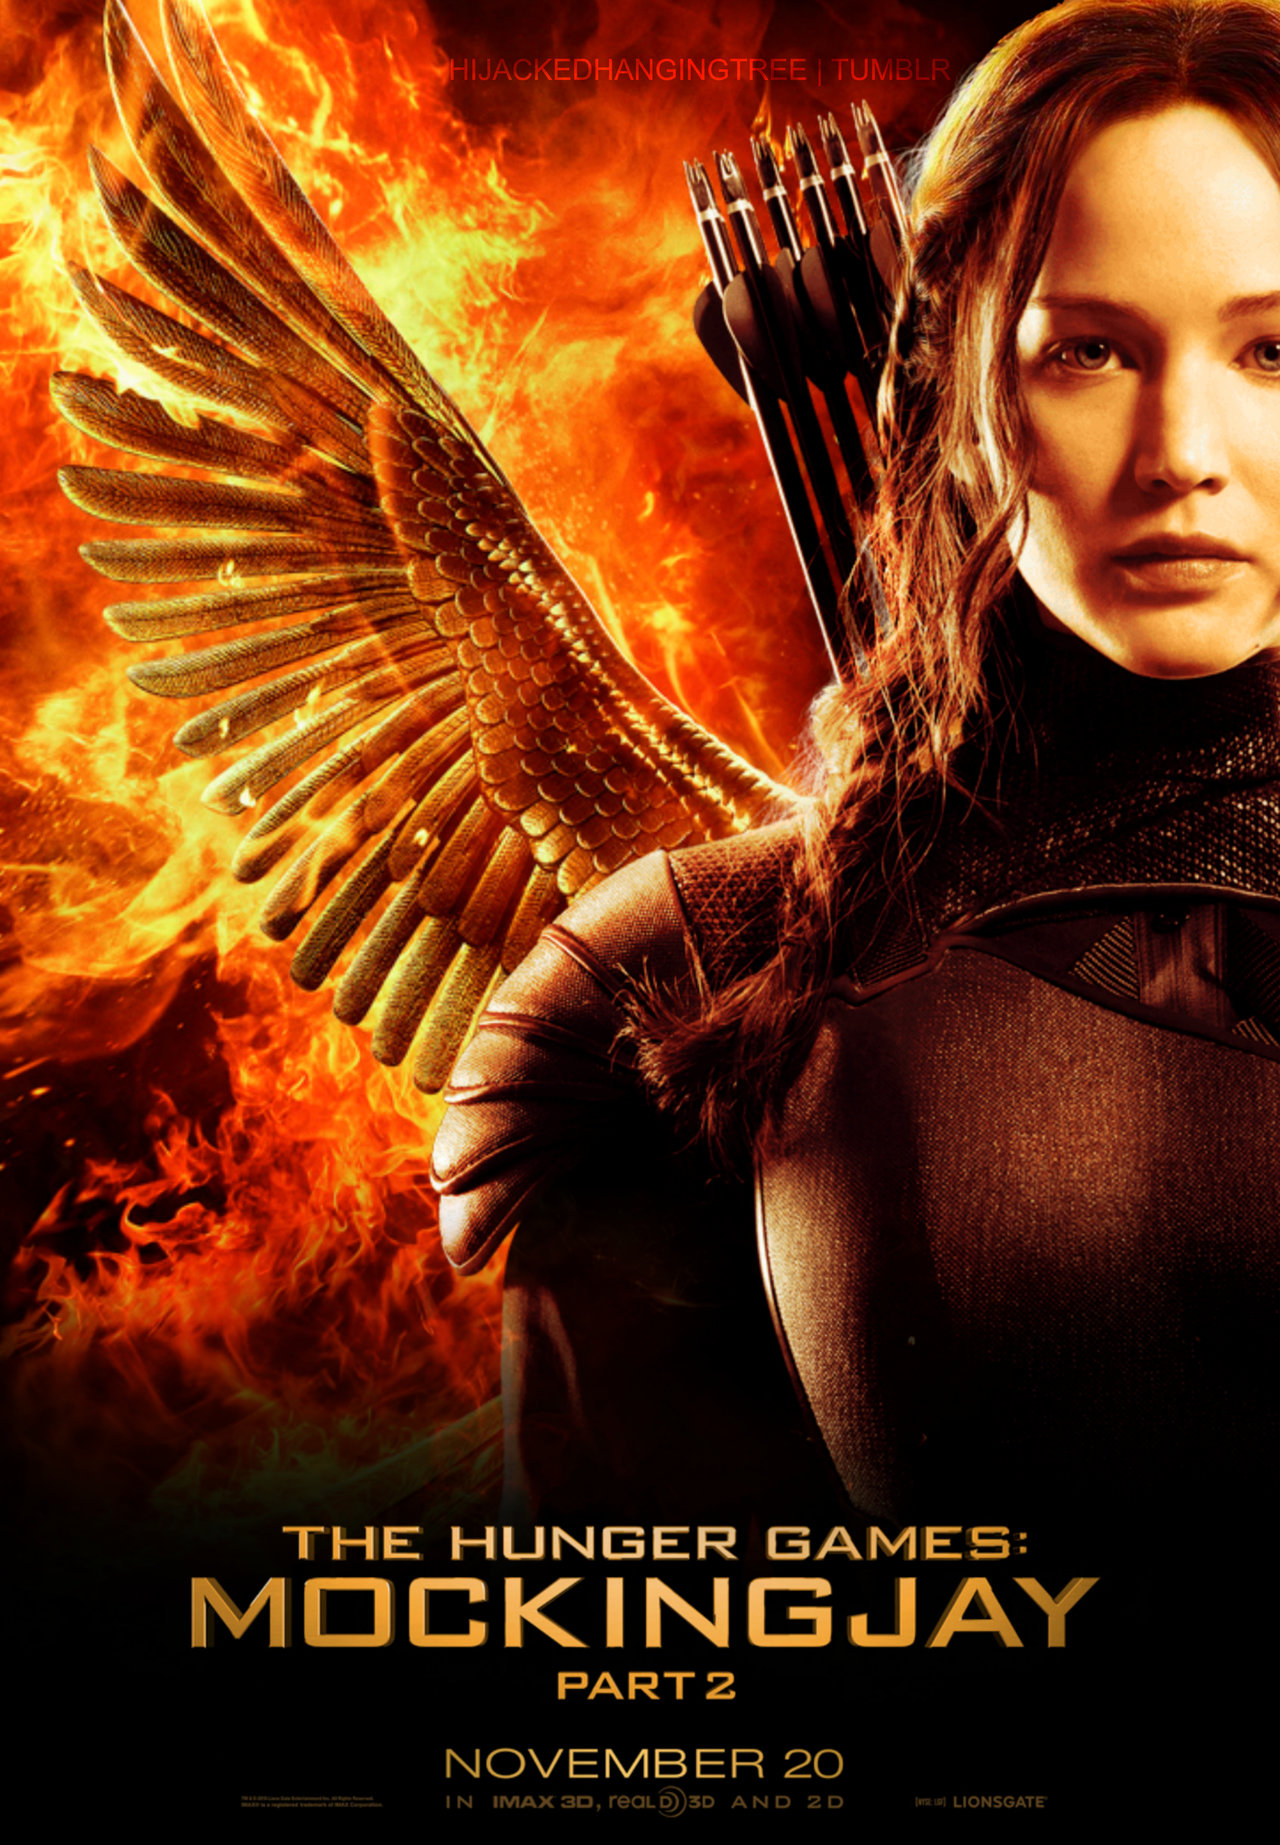 NEW MOVIE PROMOTION: THE HUNGER GAMES: MOCKINGJAY PART 2 ...